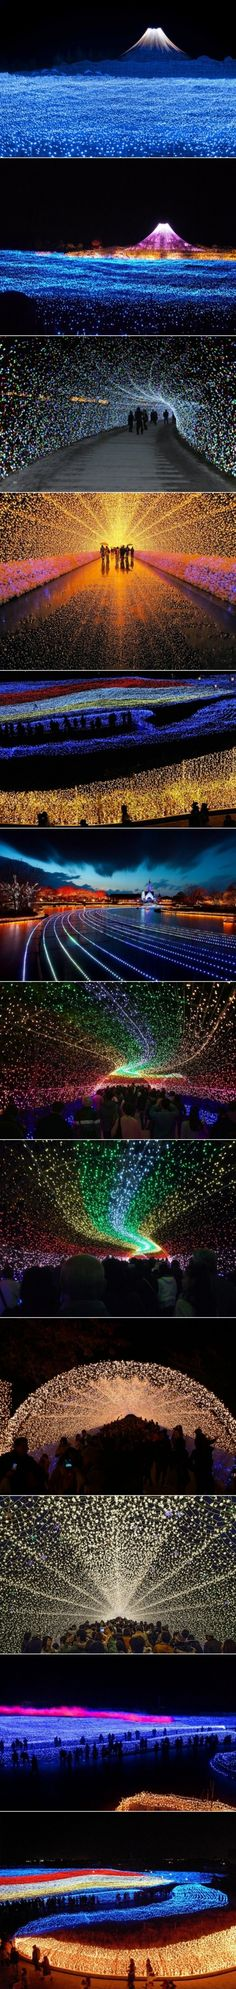 Japan's Winter Lights Festival - want to go..